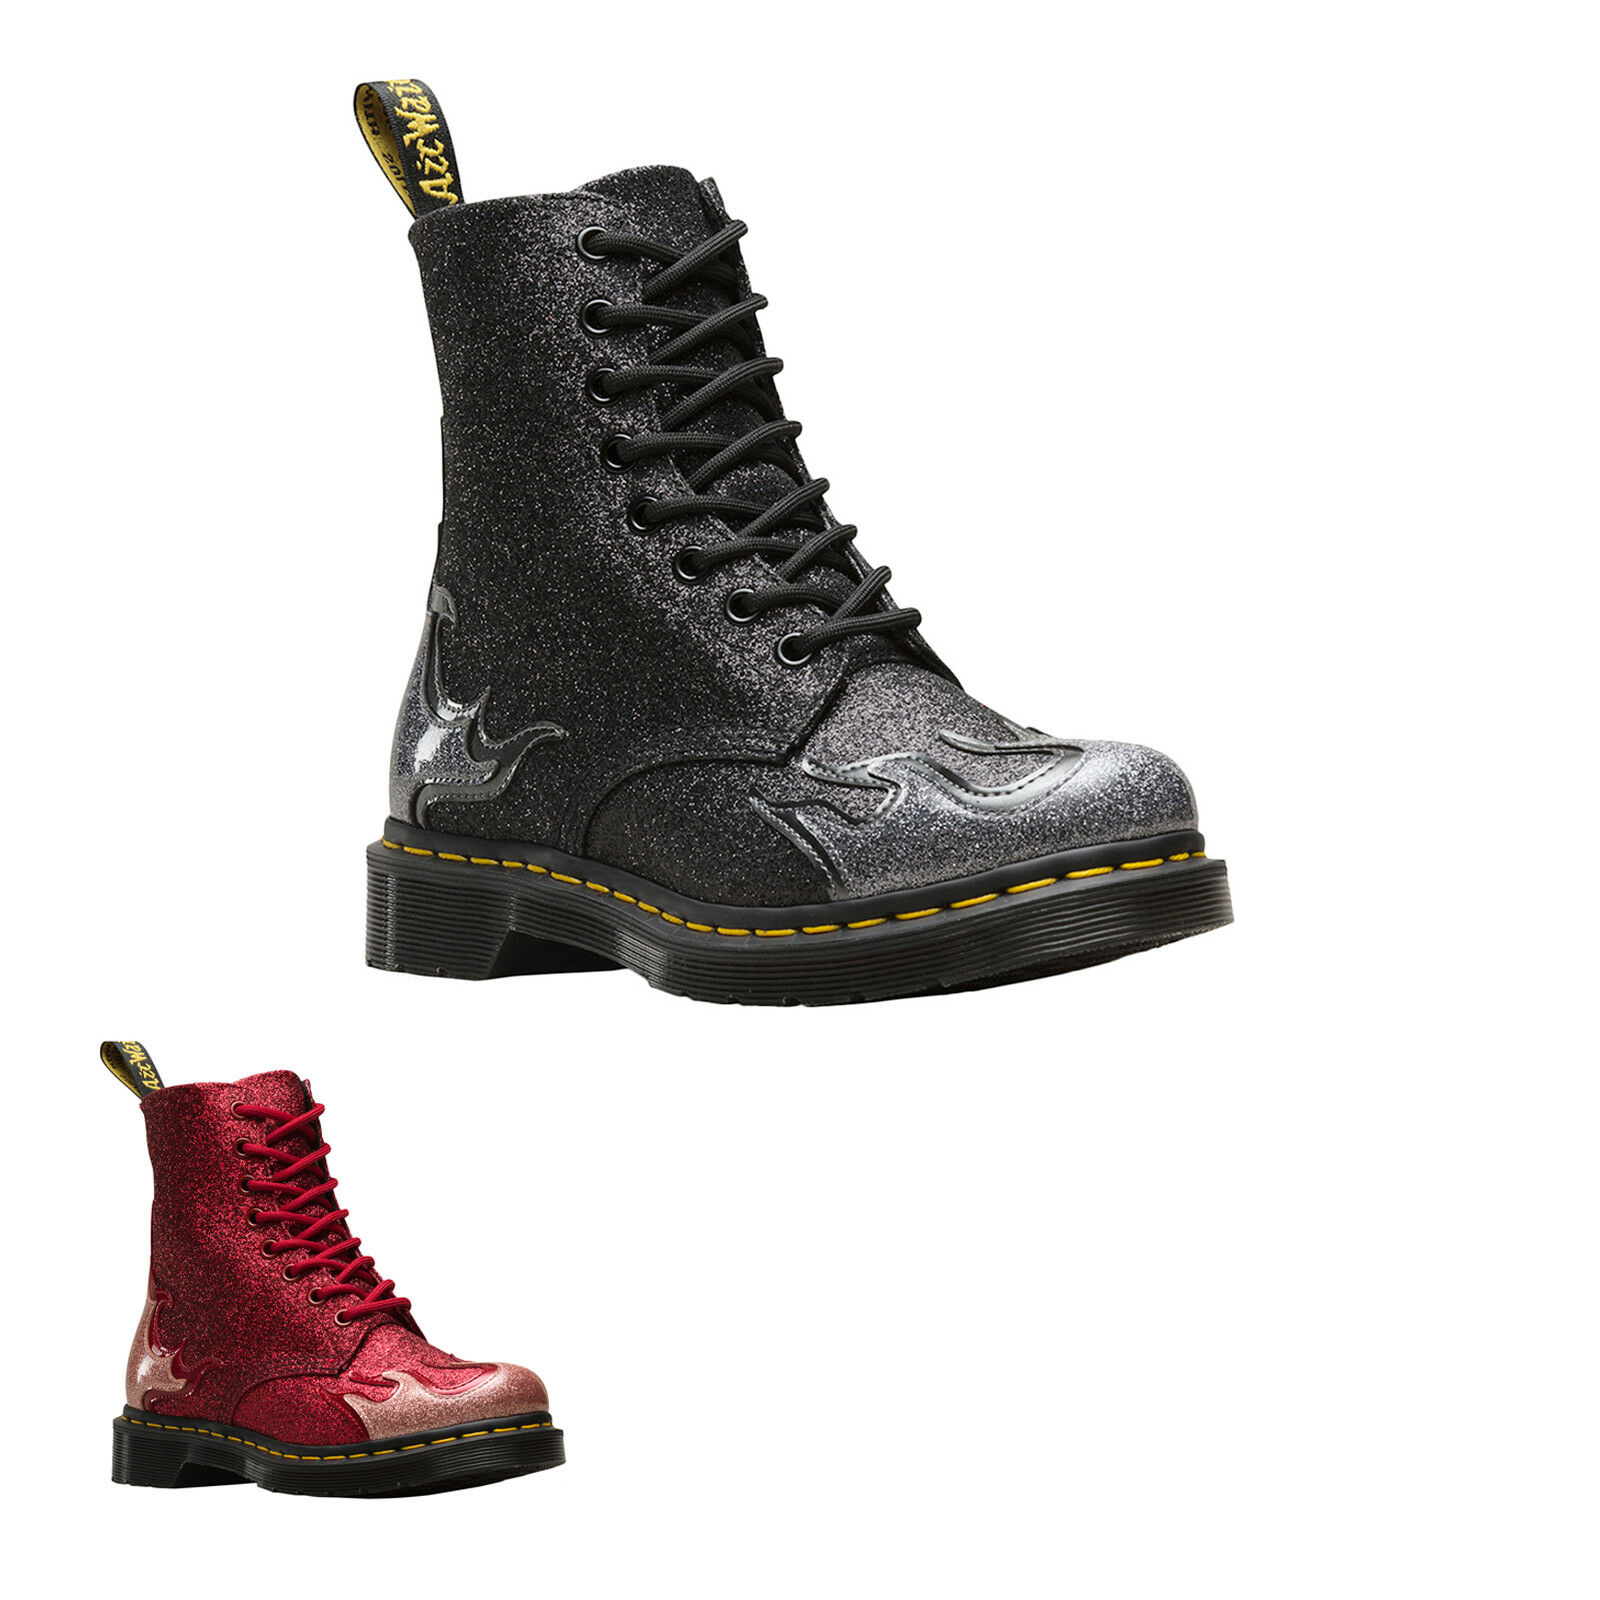 Dr. Martens 1460 PA Flame Synthetic Glittery Lace-Up Bottines Bottes Femmes